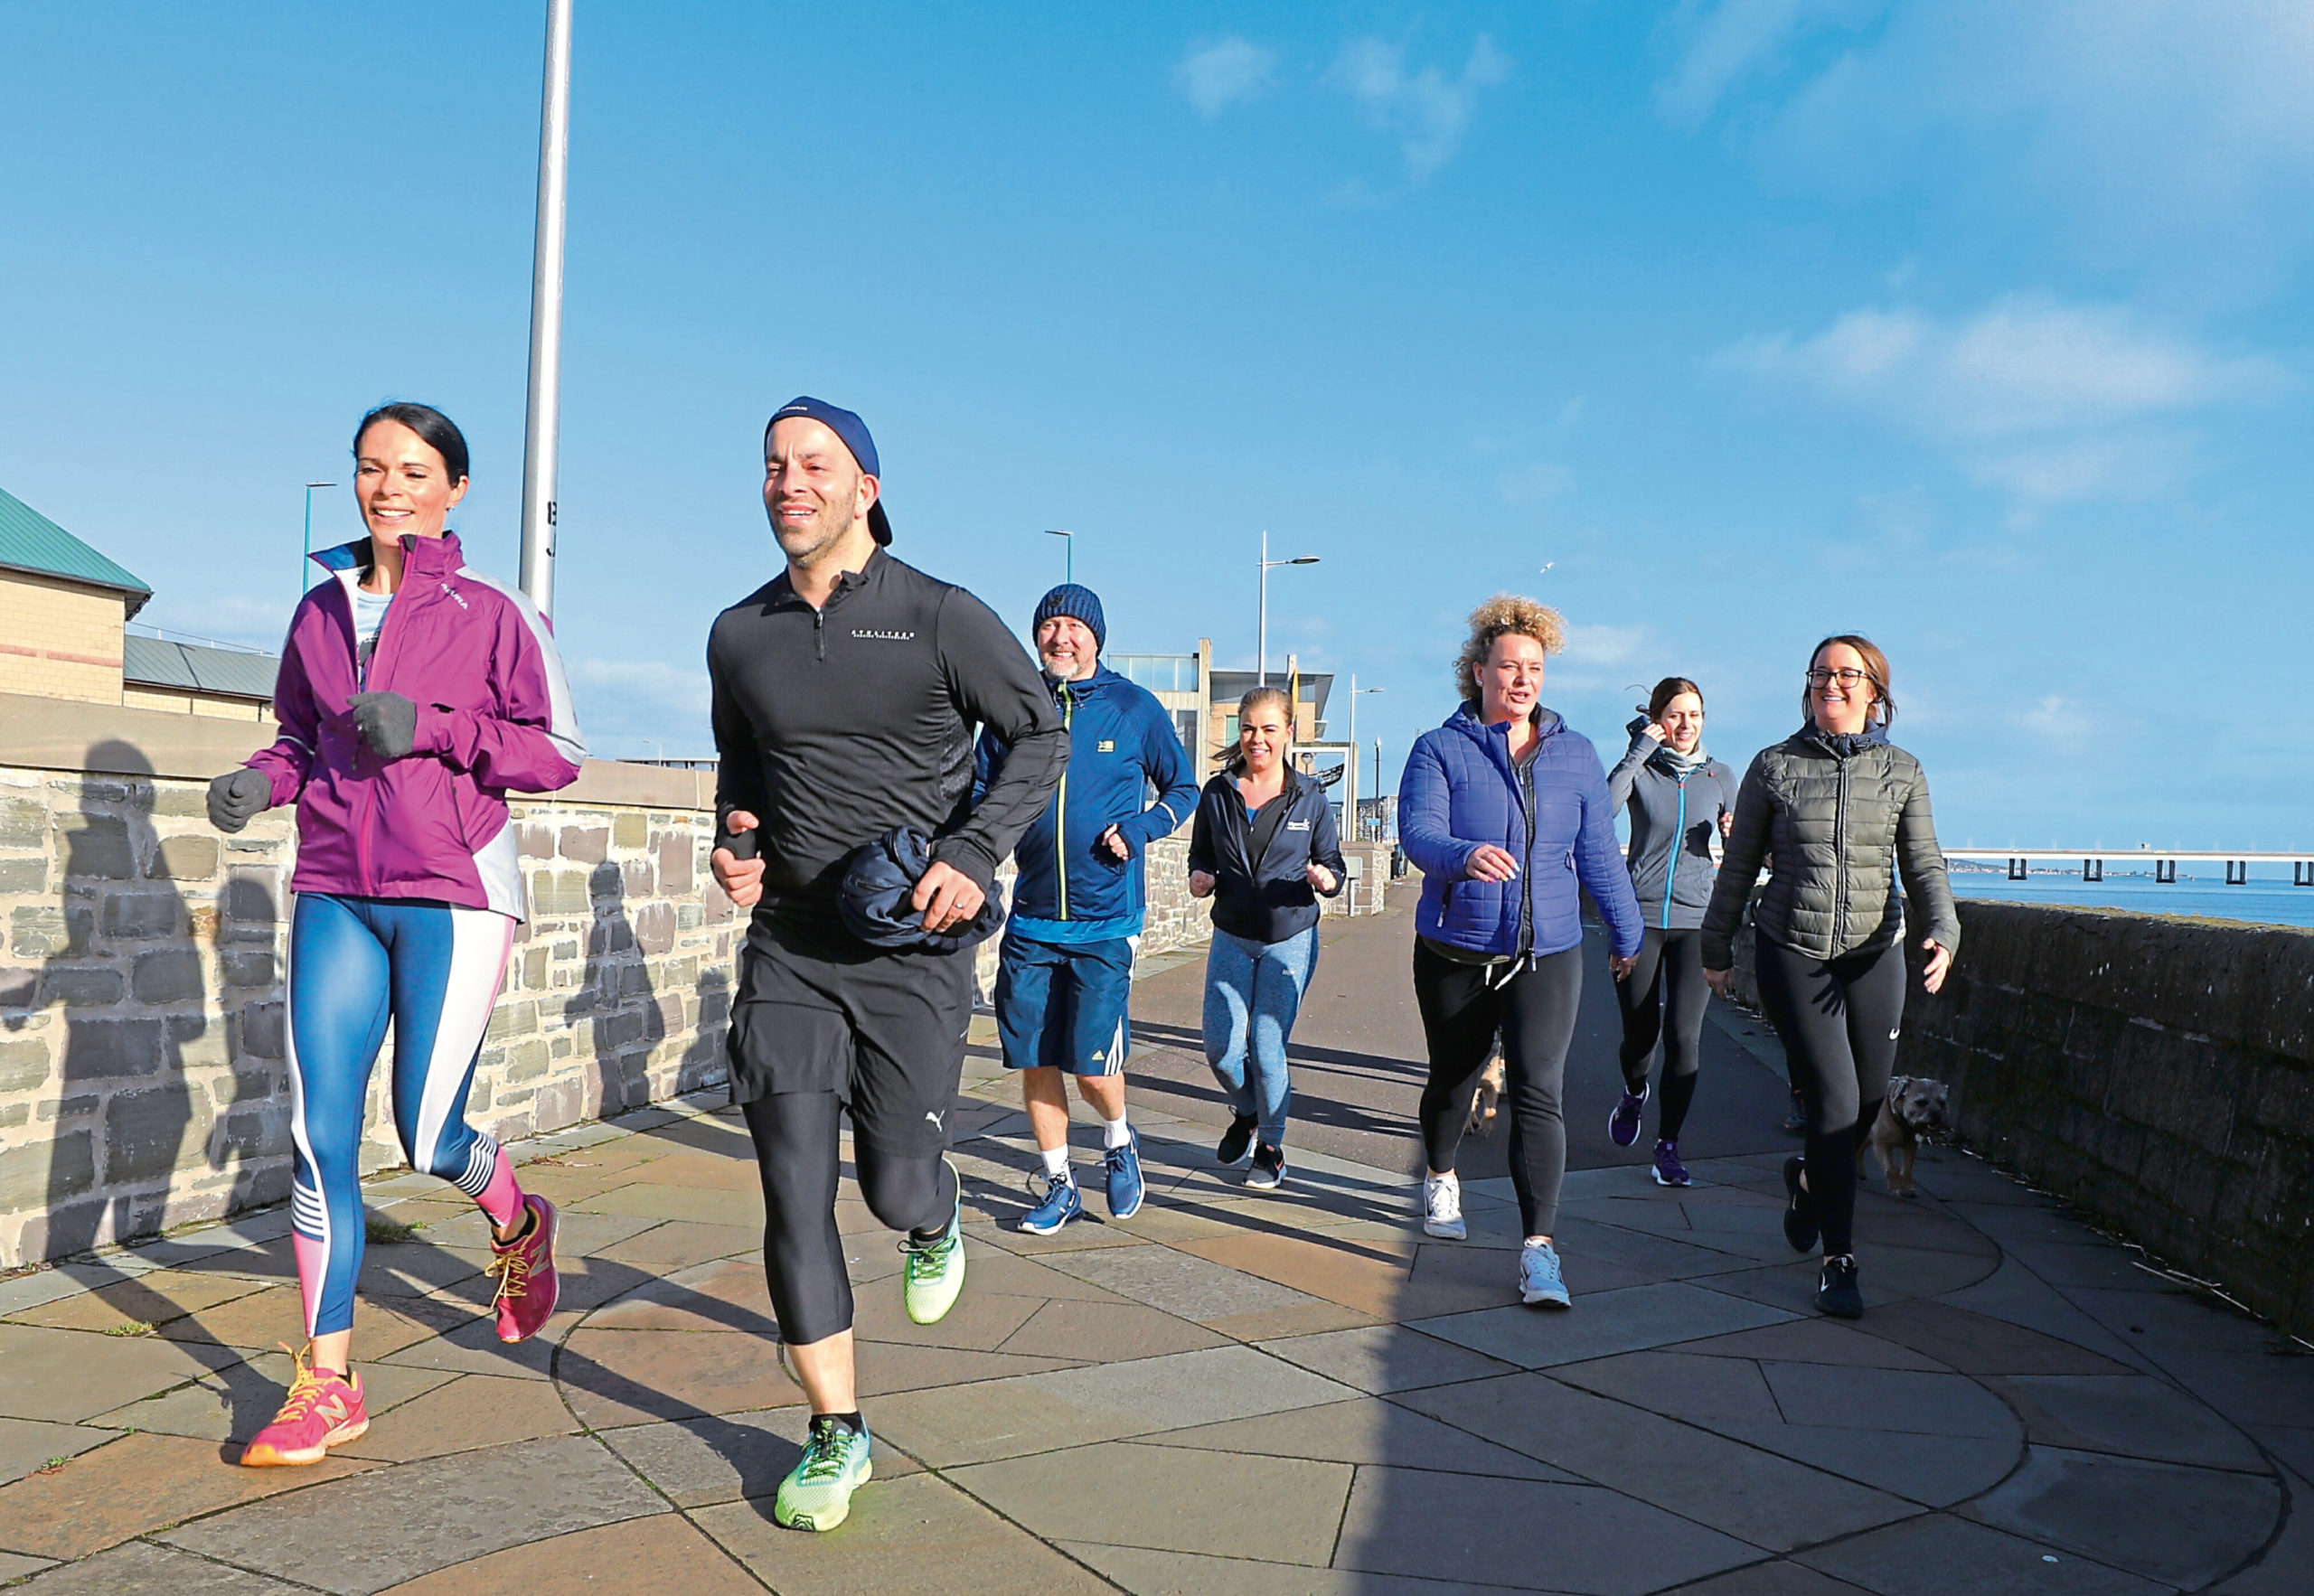 Gayle with the Run Talk Run group on Riverside Drive, Dundee.